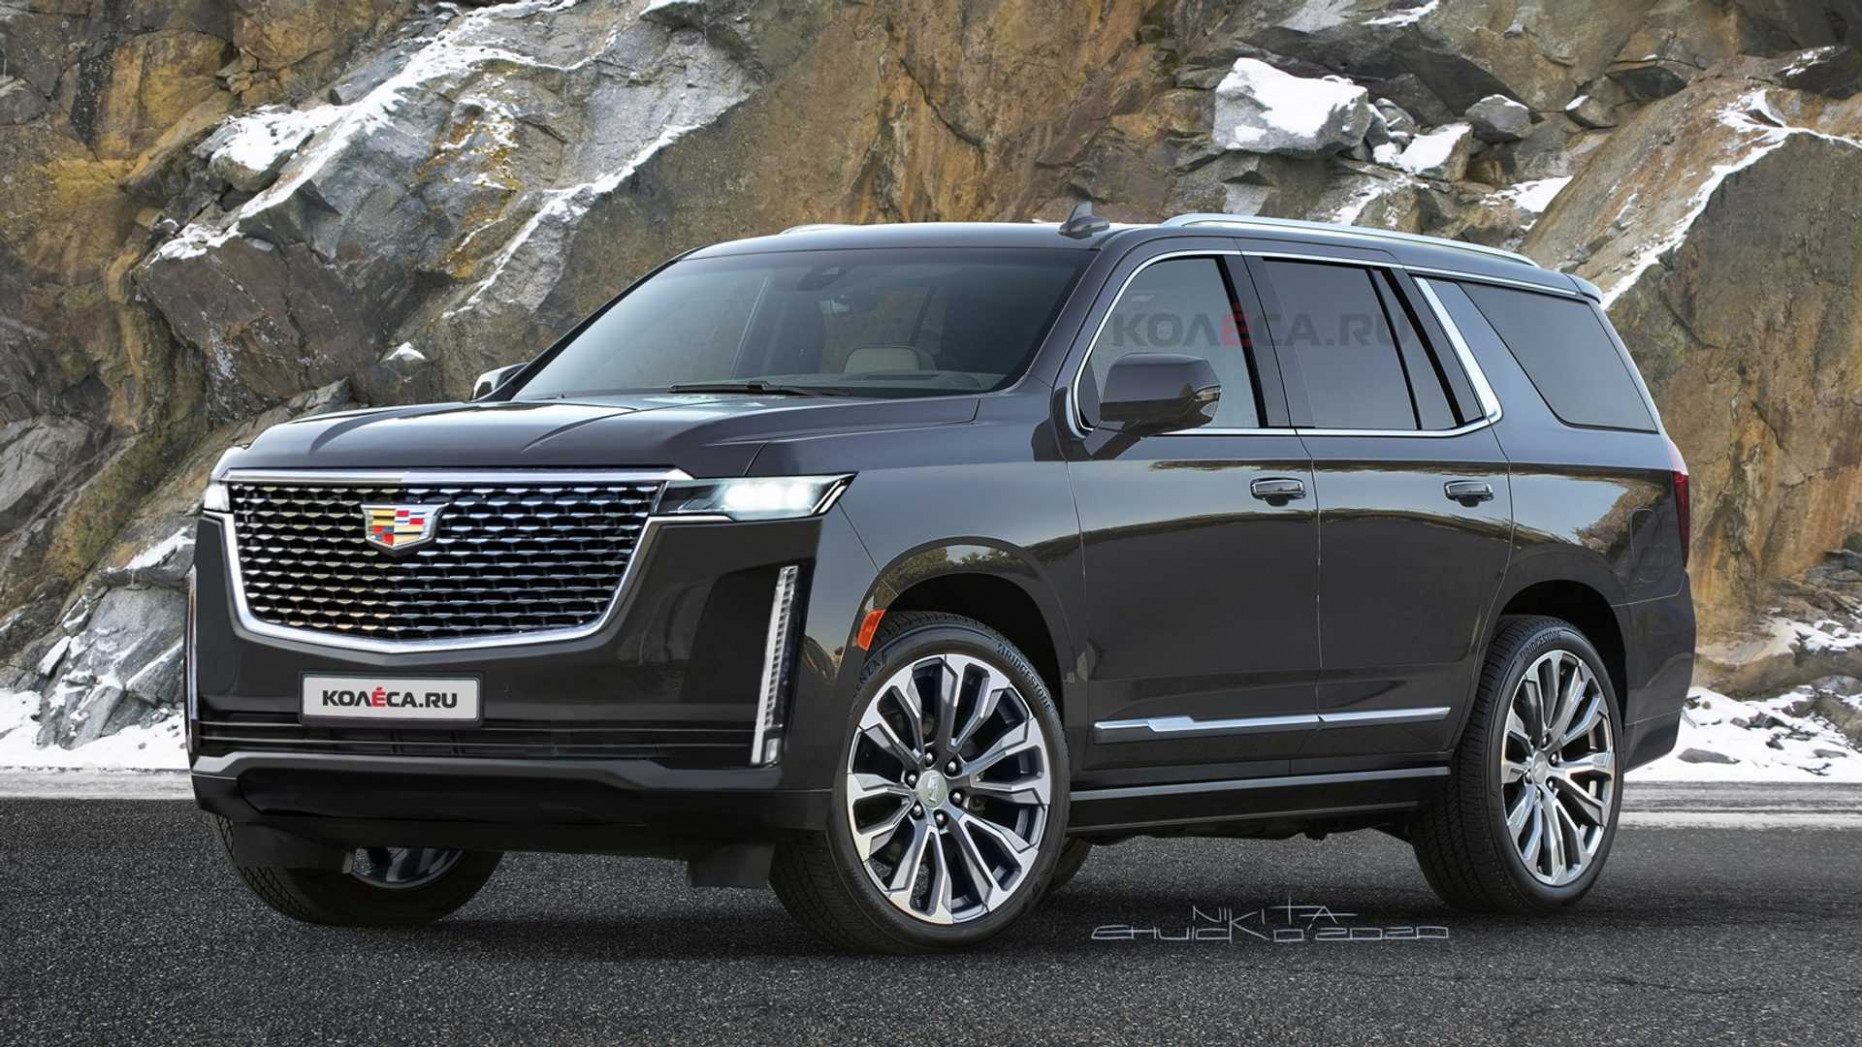 10 Cadillac Escalade Rendered Based On Teasers - 2020 cadillac jeep